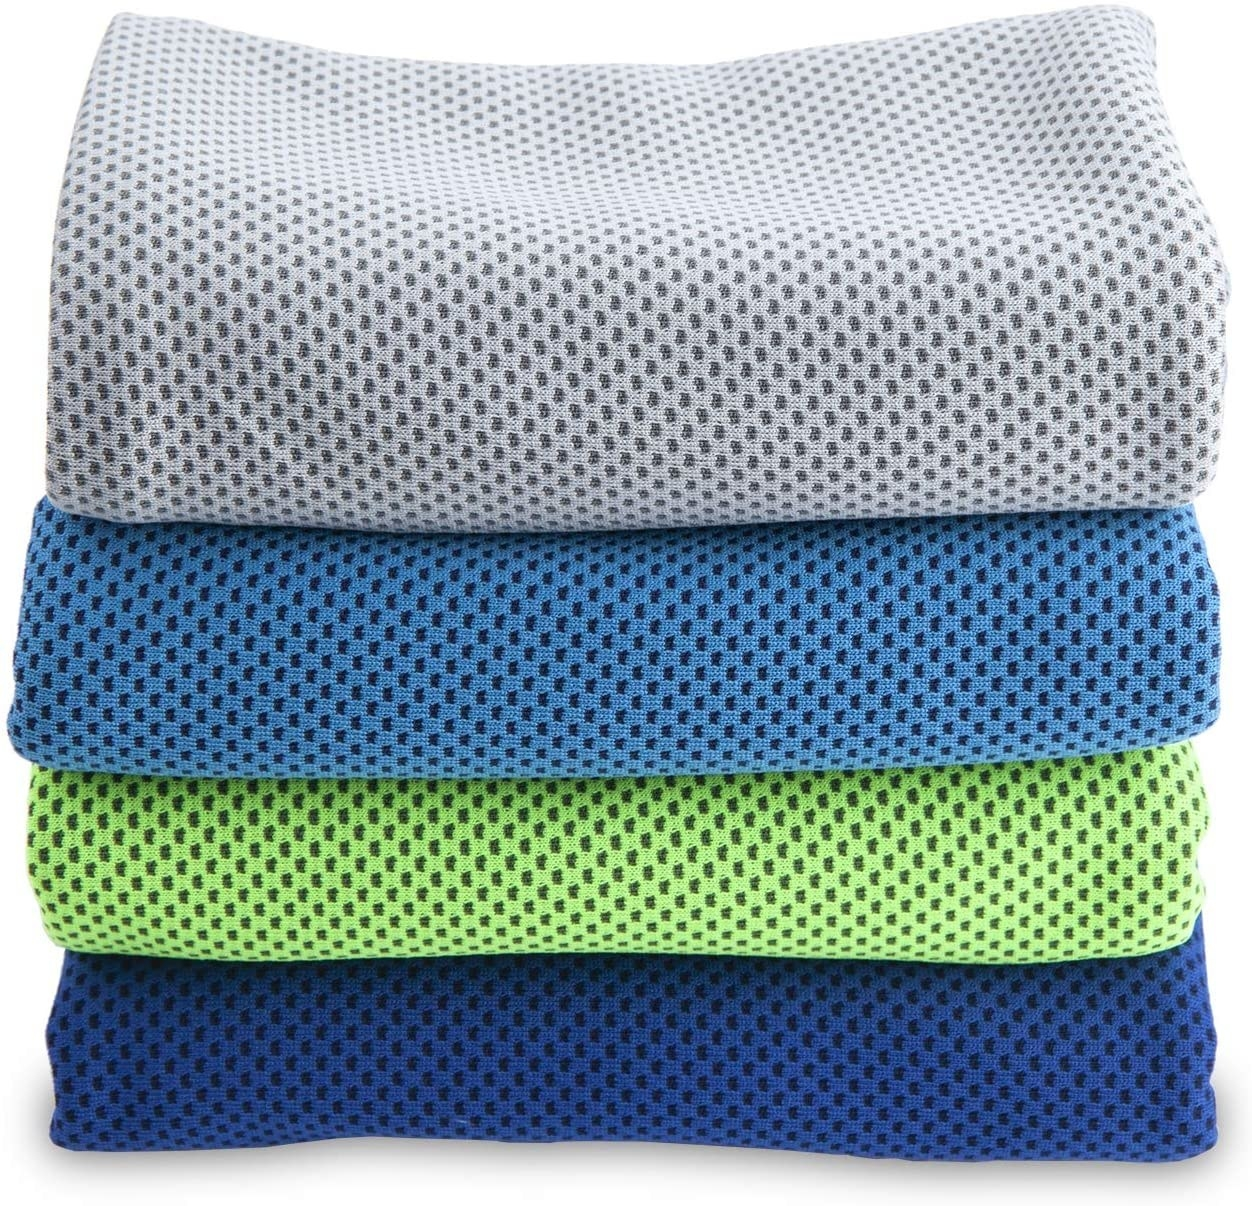 The perforated towels in gray, light blue, green, and dark blue